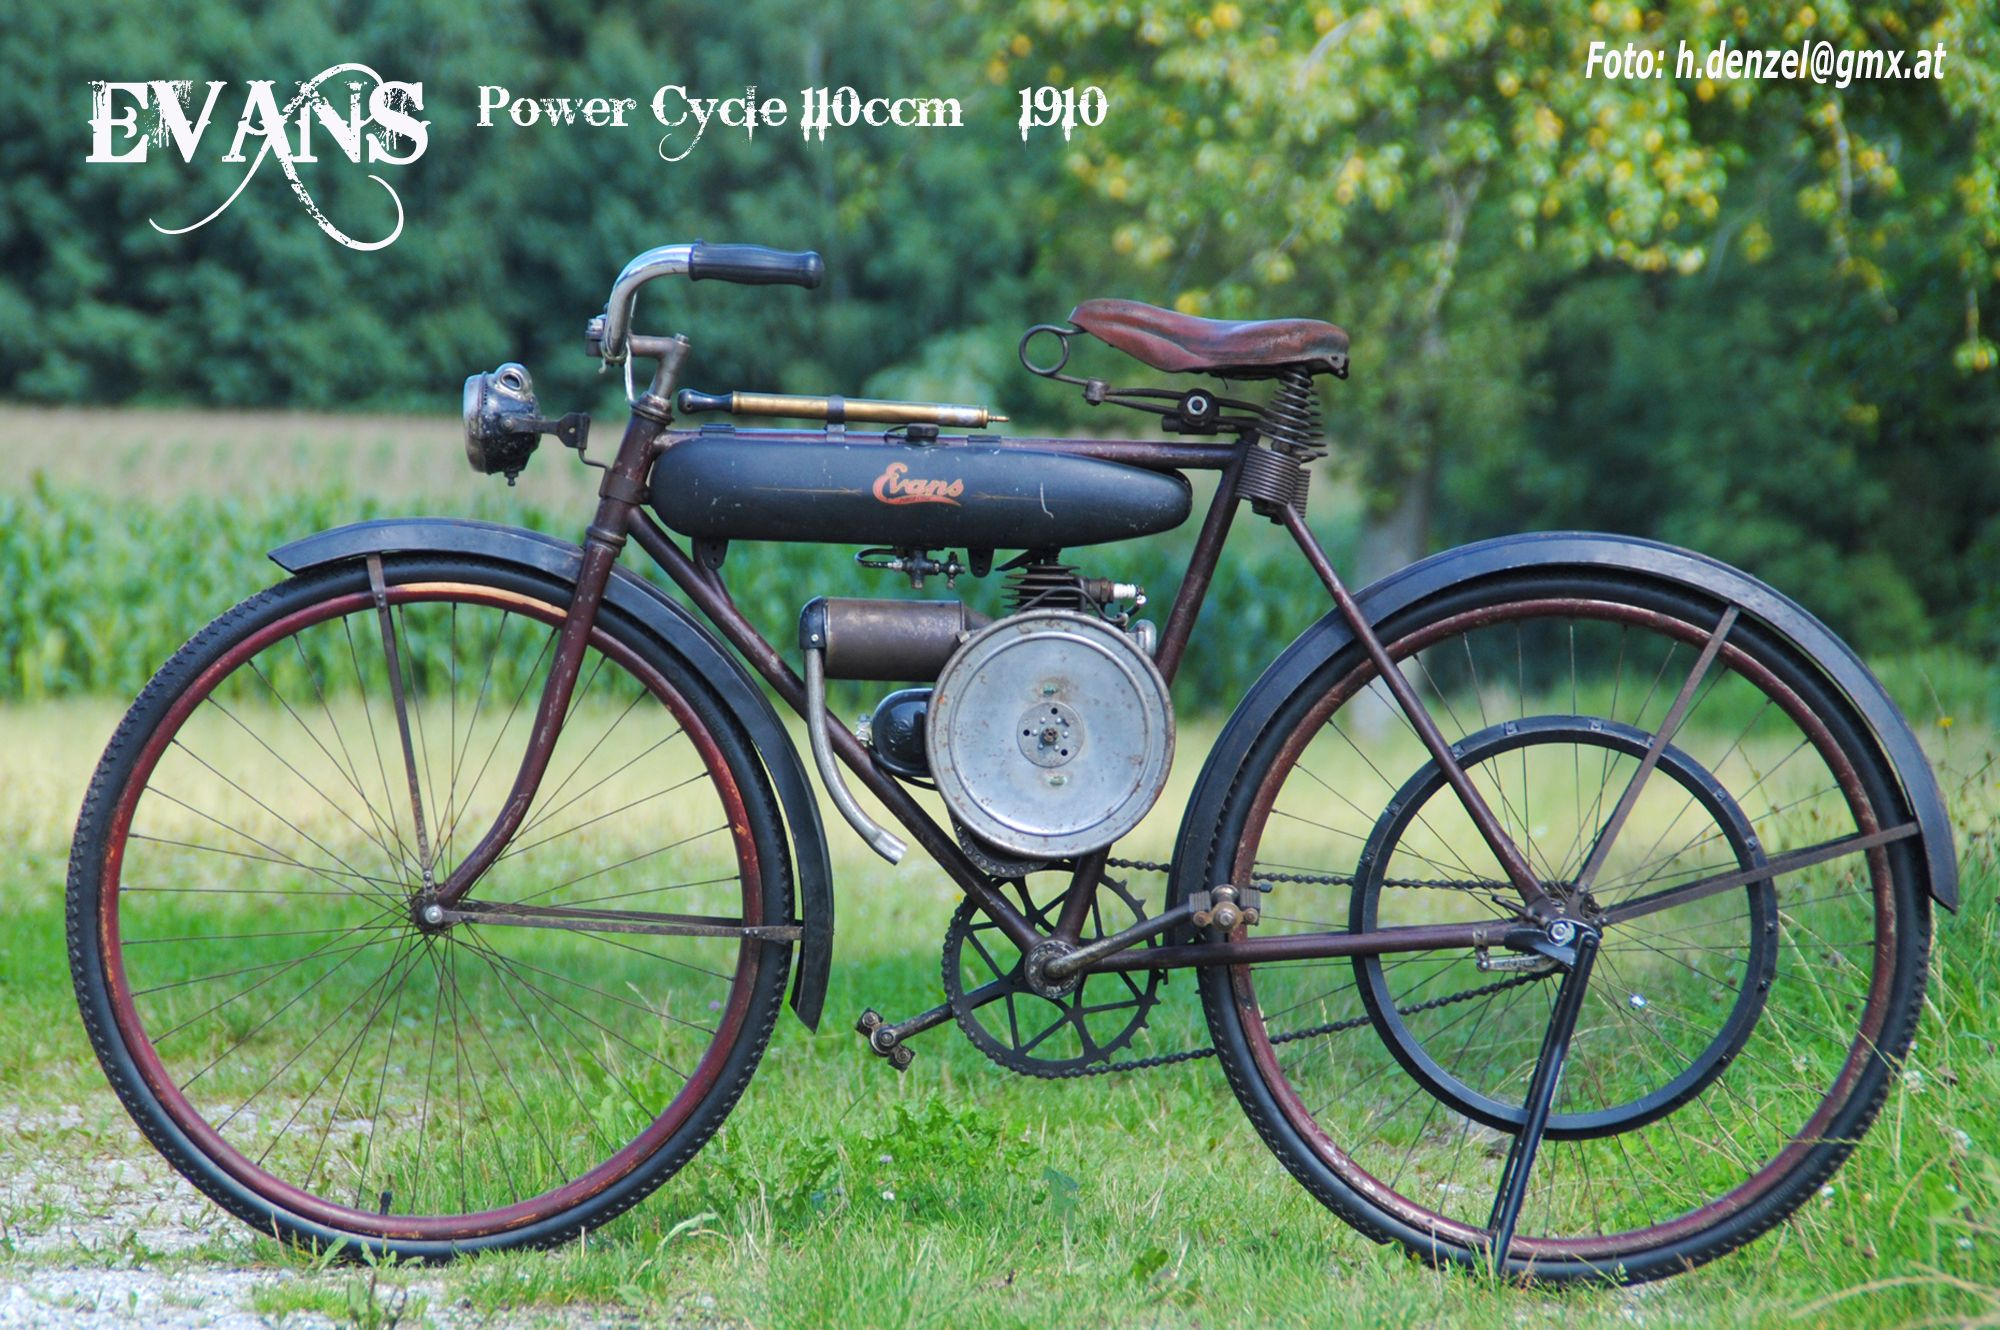 Evans Power Cycle 110ccm 1910 | 50CC Scooters | Cyklar